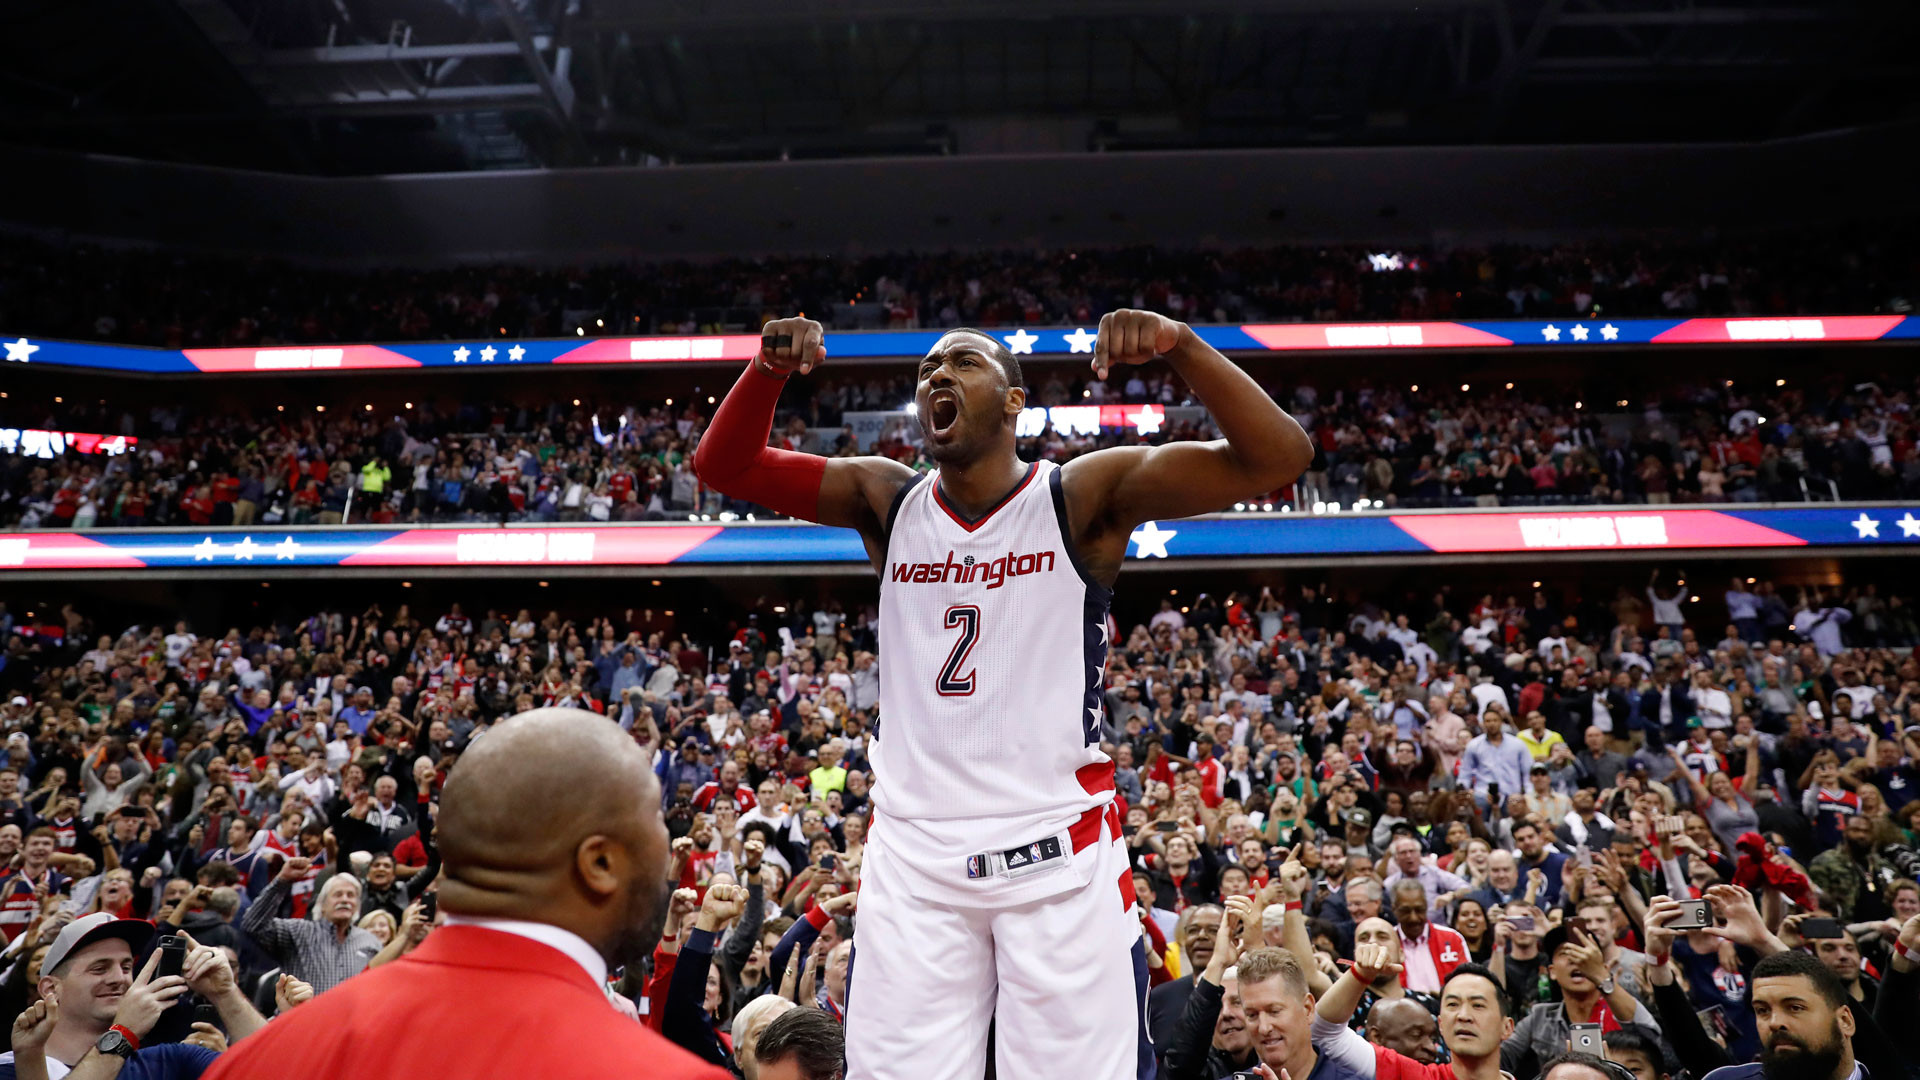 Takeaways from Wizards' thrilling victory in Game 6 vs. Boston Celtics |  CSN Mid-Atlantic